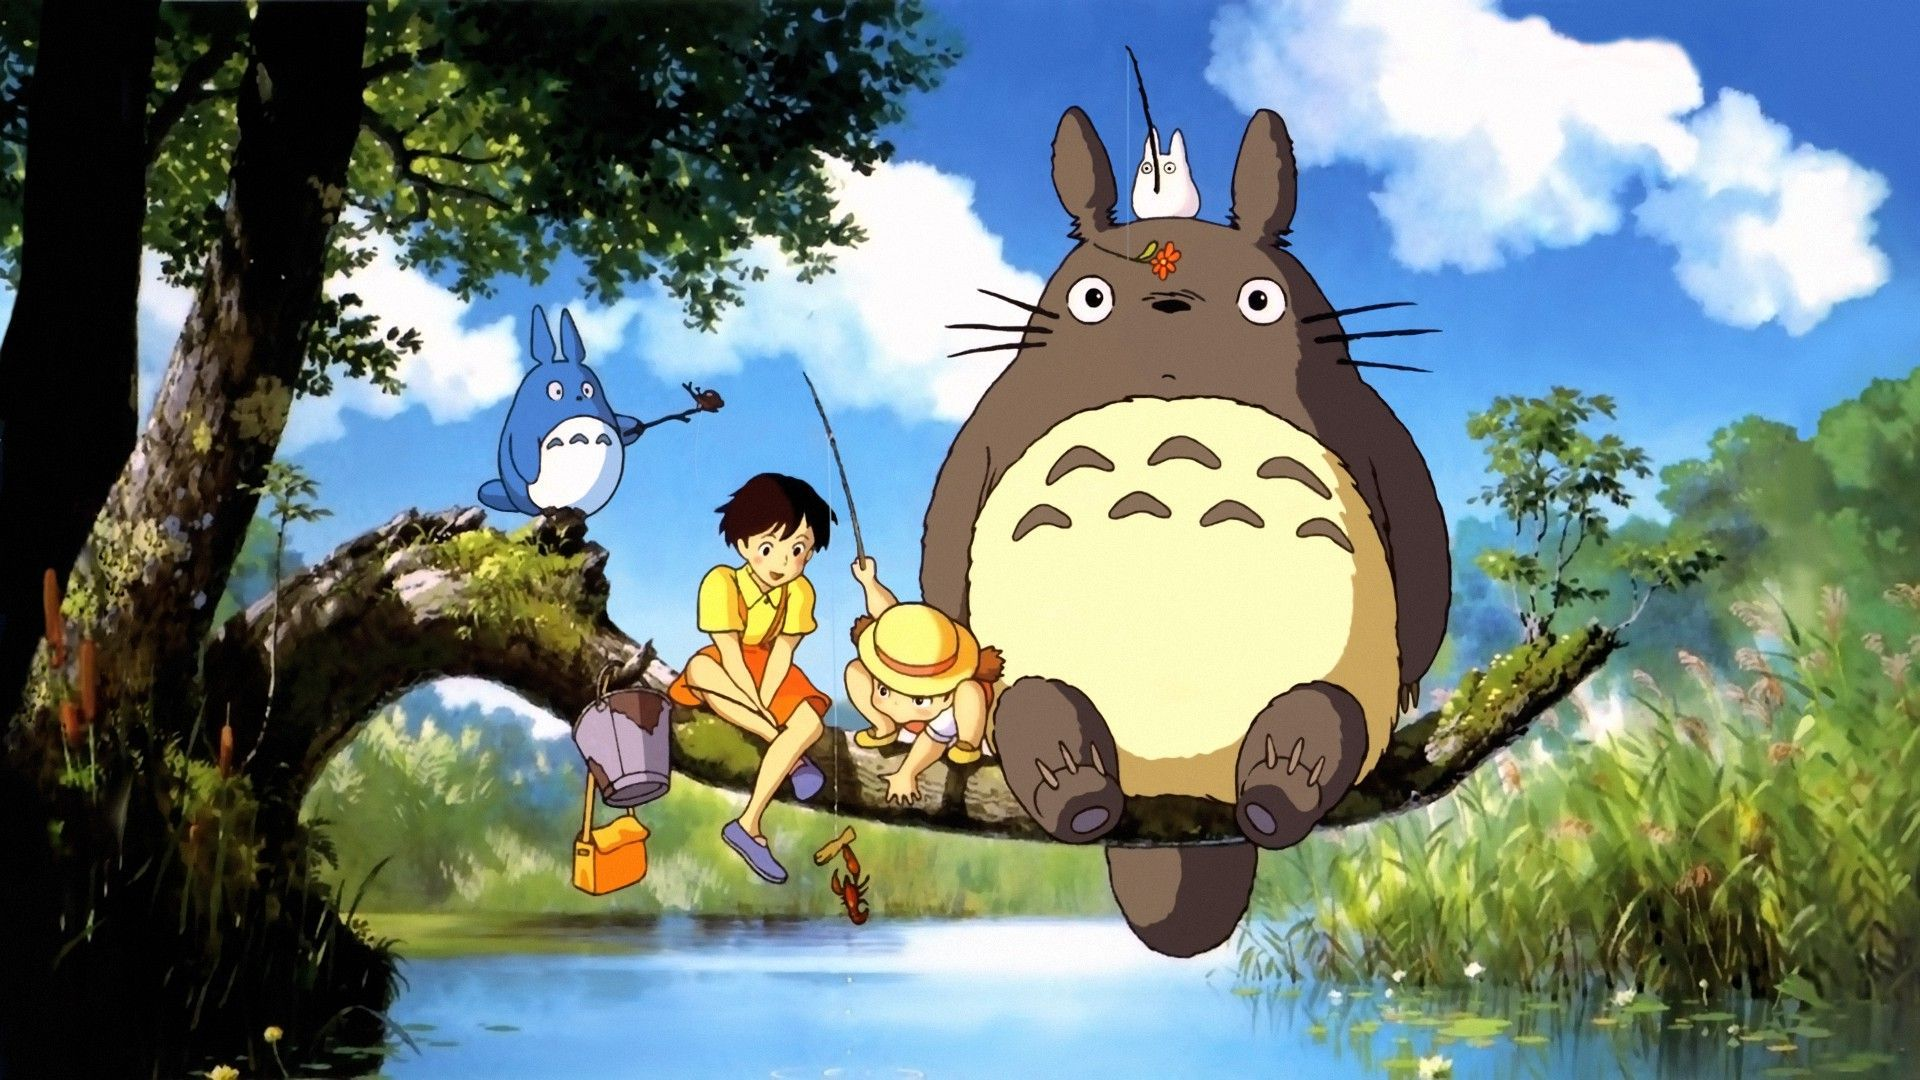 My Neighbor Totoro Backgrounds on Wallpapers Vista